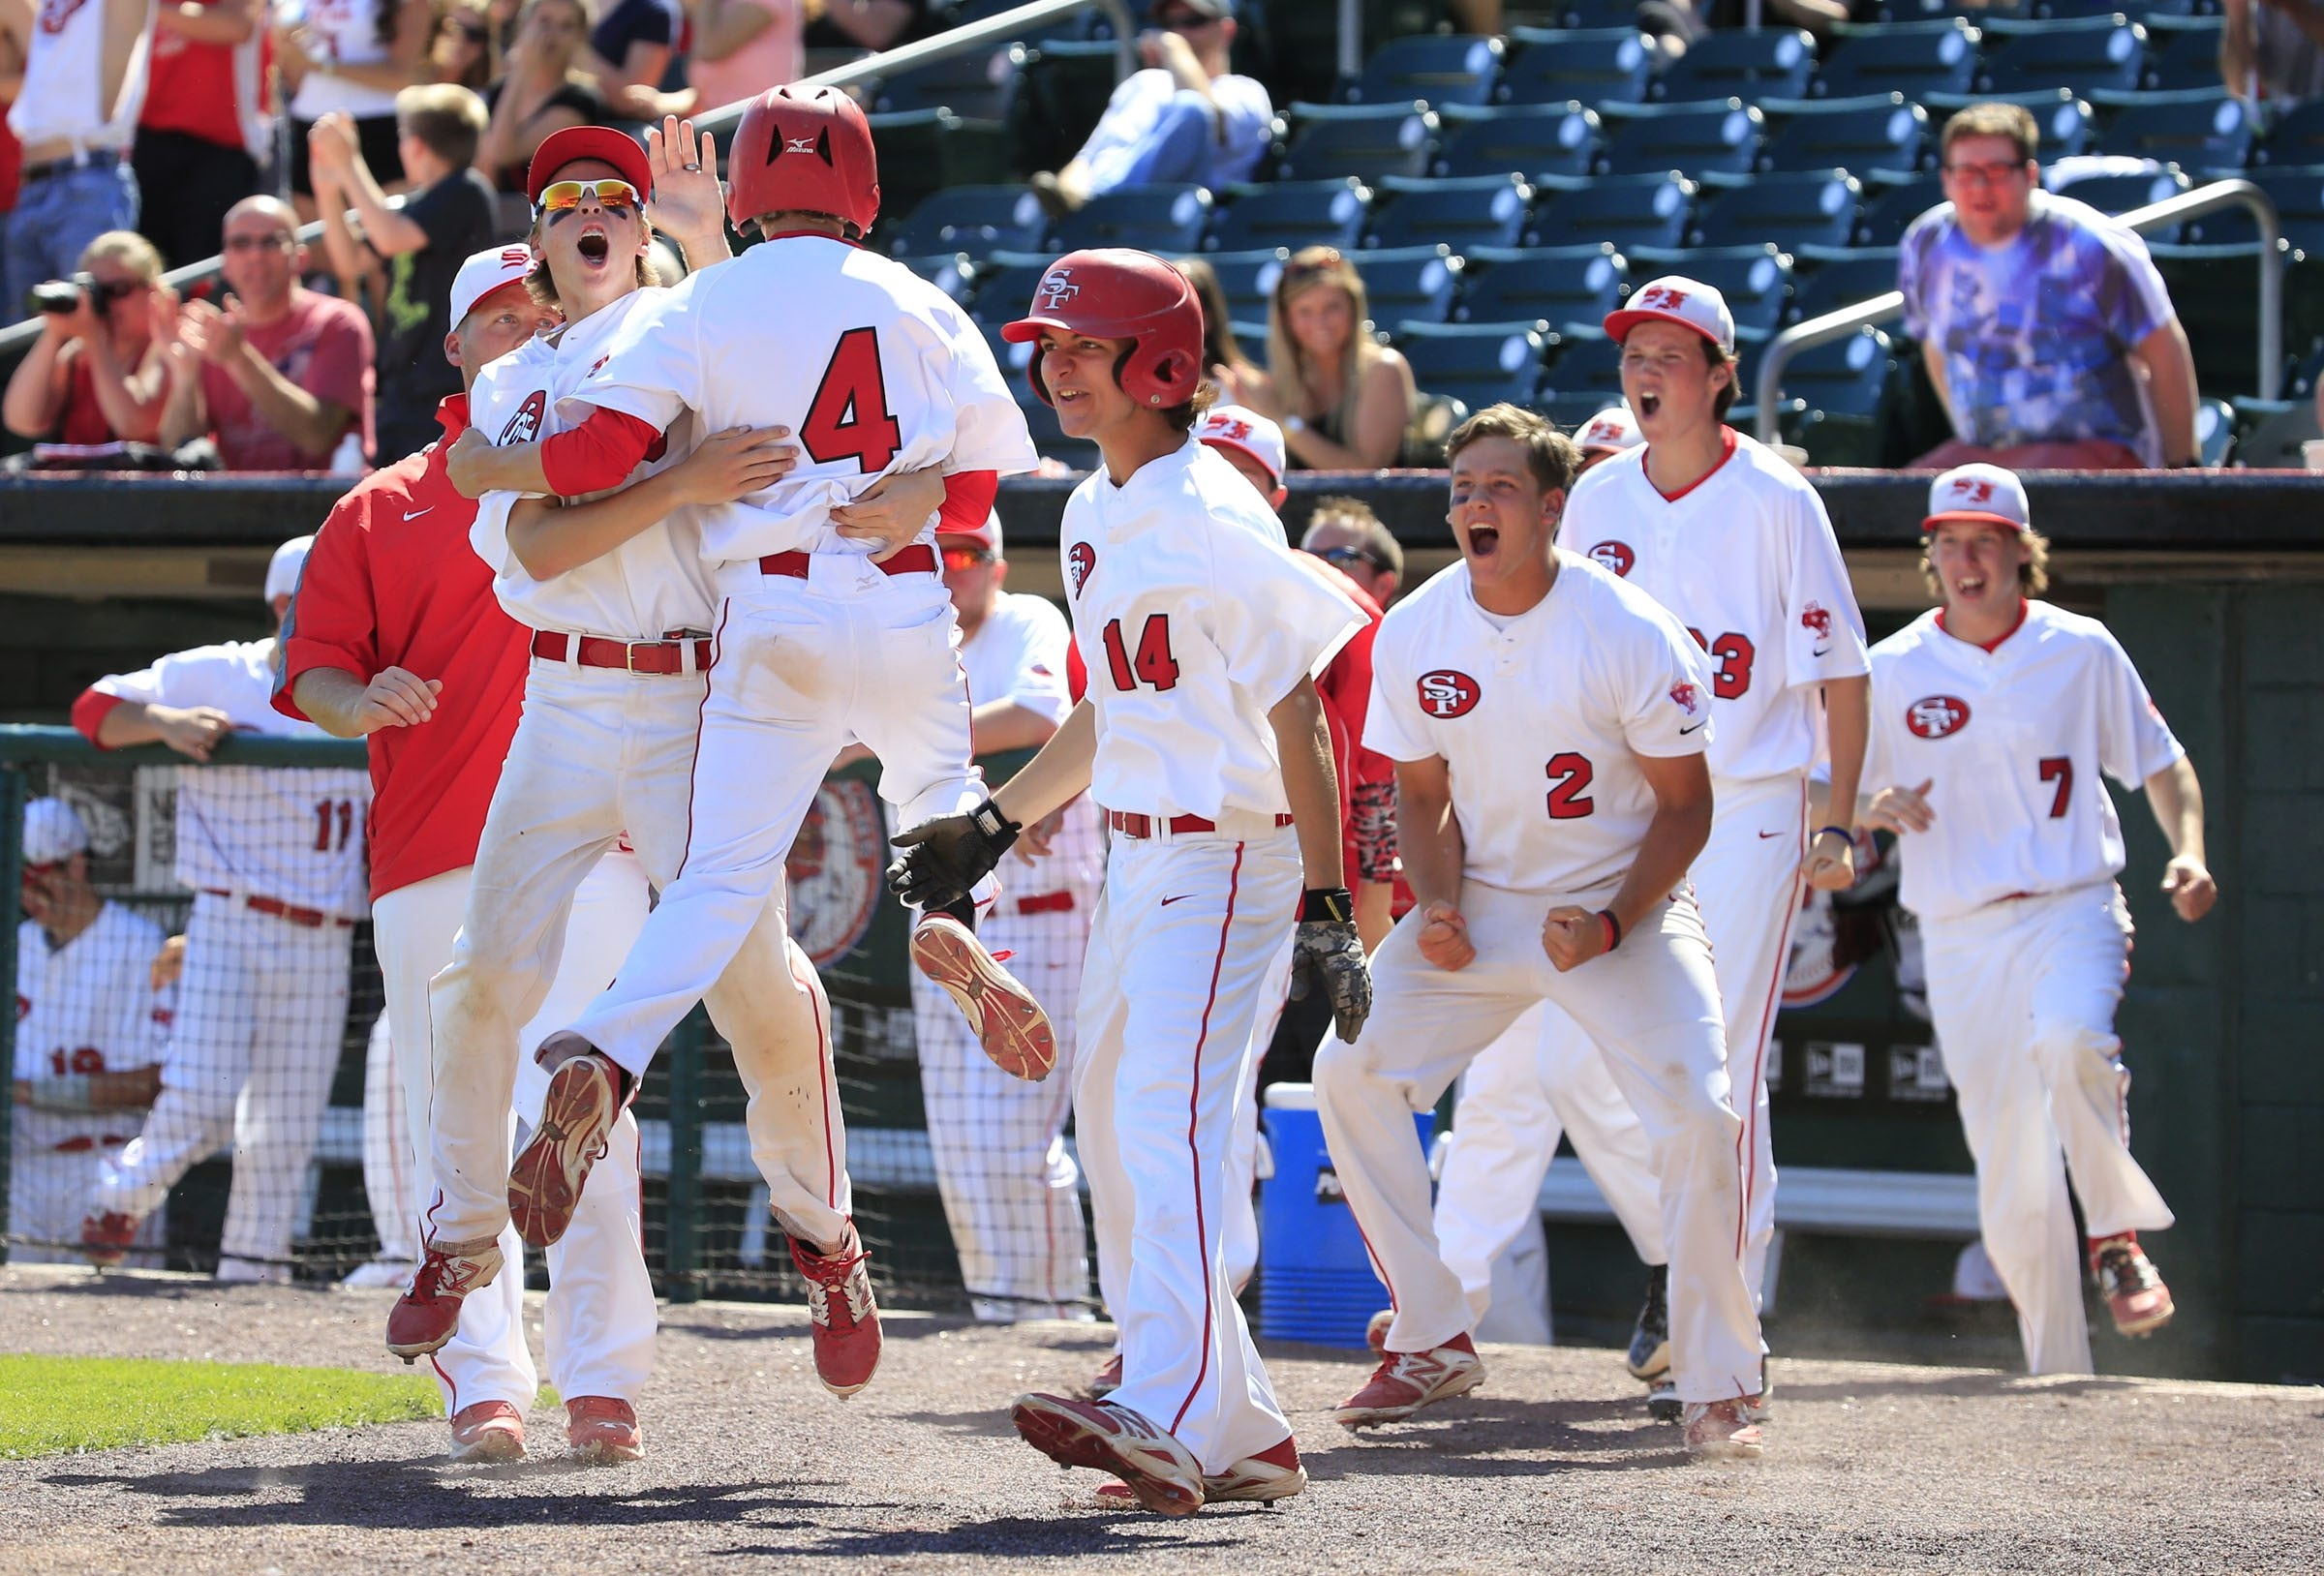 St. Francis players celebrate their walk-off victory in eight innings to clinch the Georgetown Cup playoff series title.